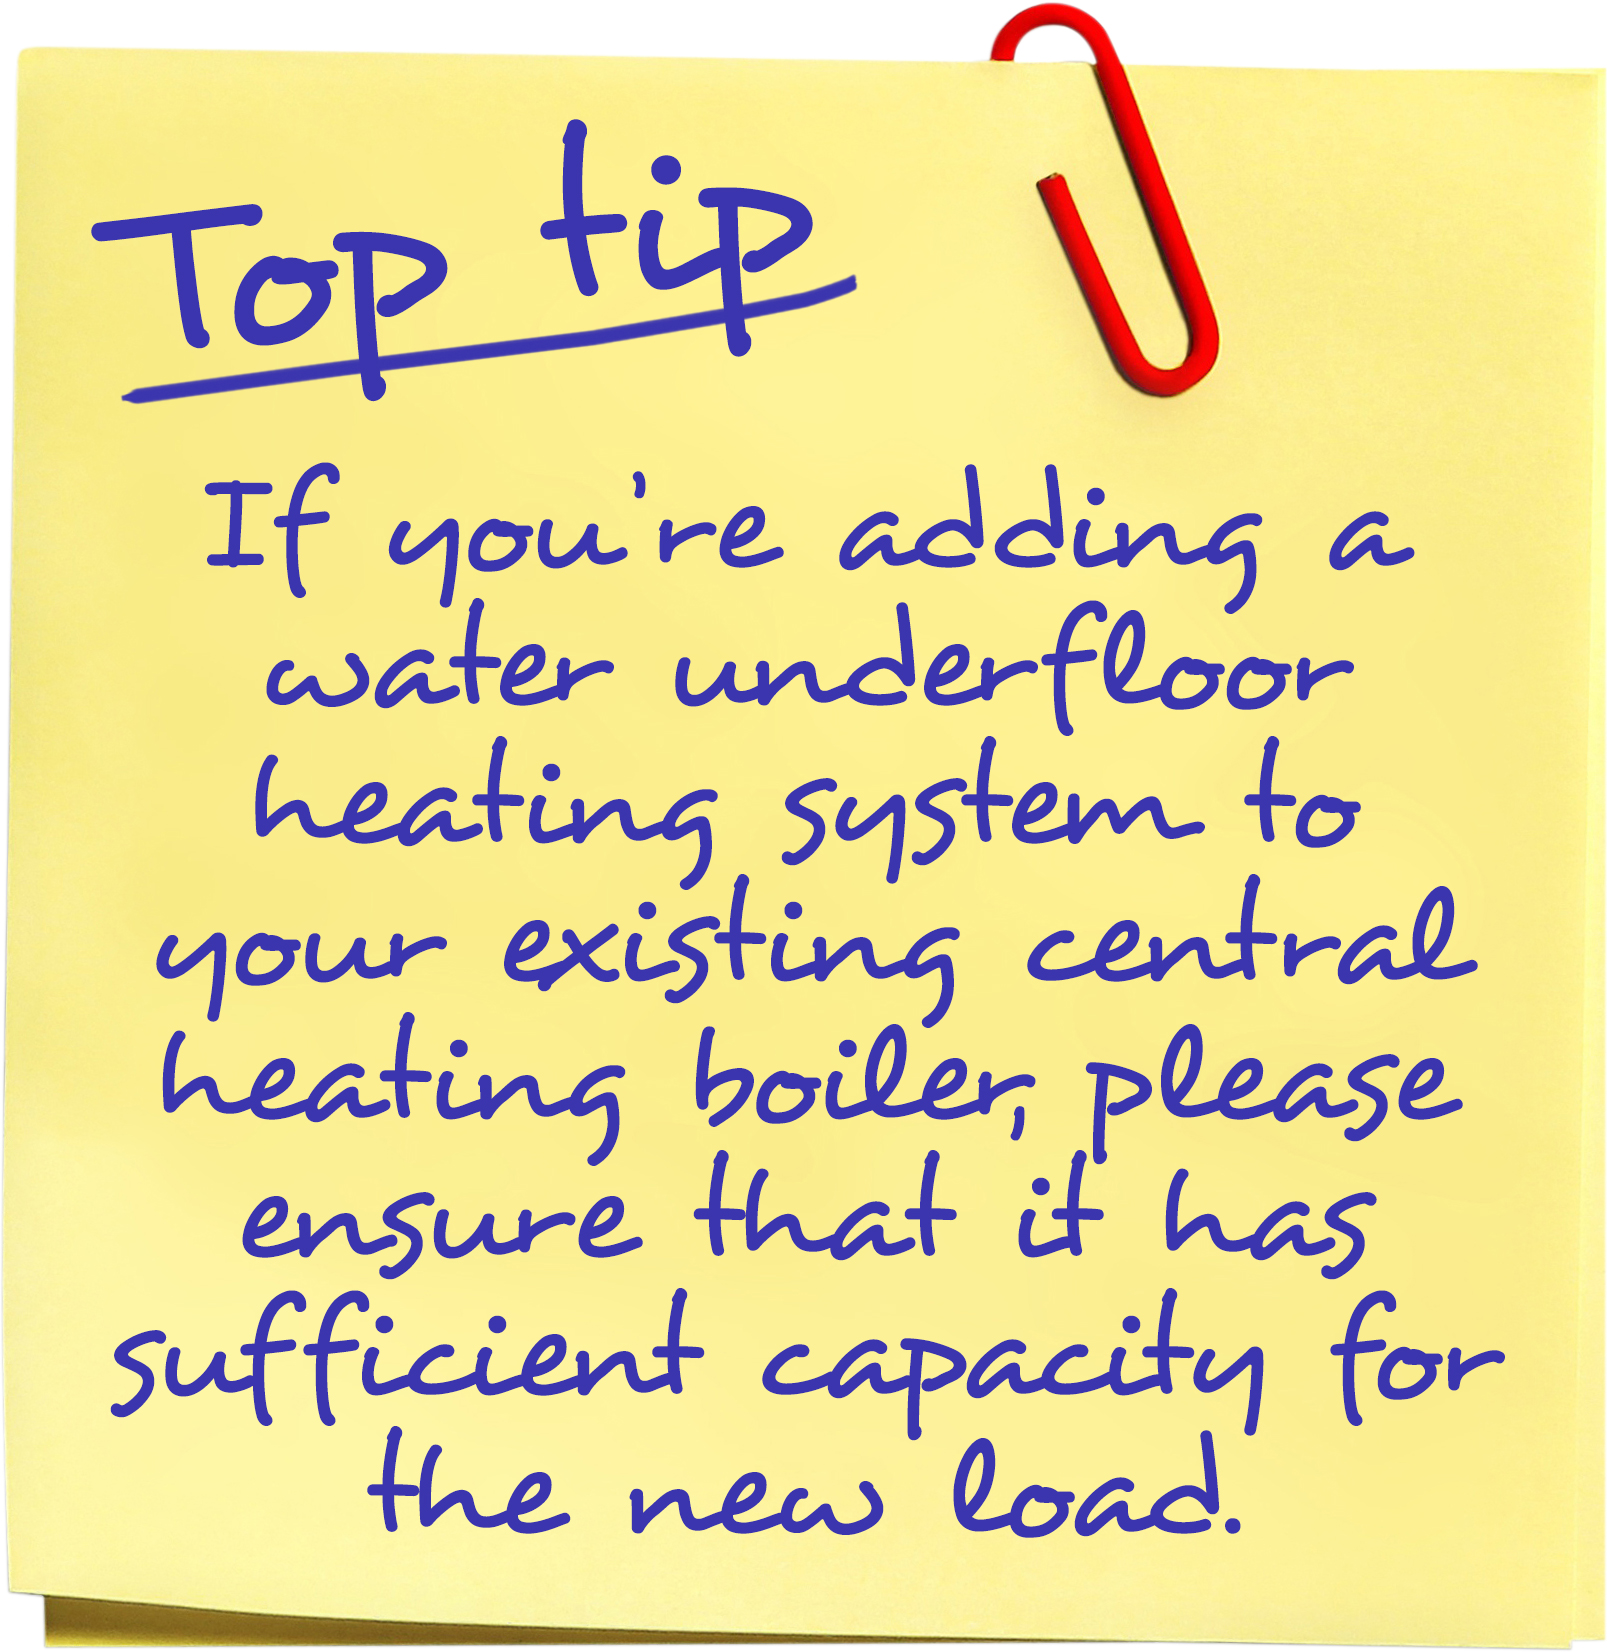 If you're adding a water underfloor heating system to your existing central heating boiler, please ensure that it has sufficient capacity for the new load.